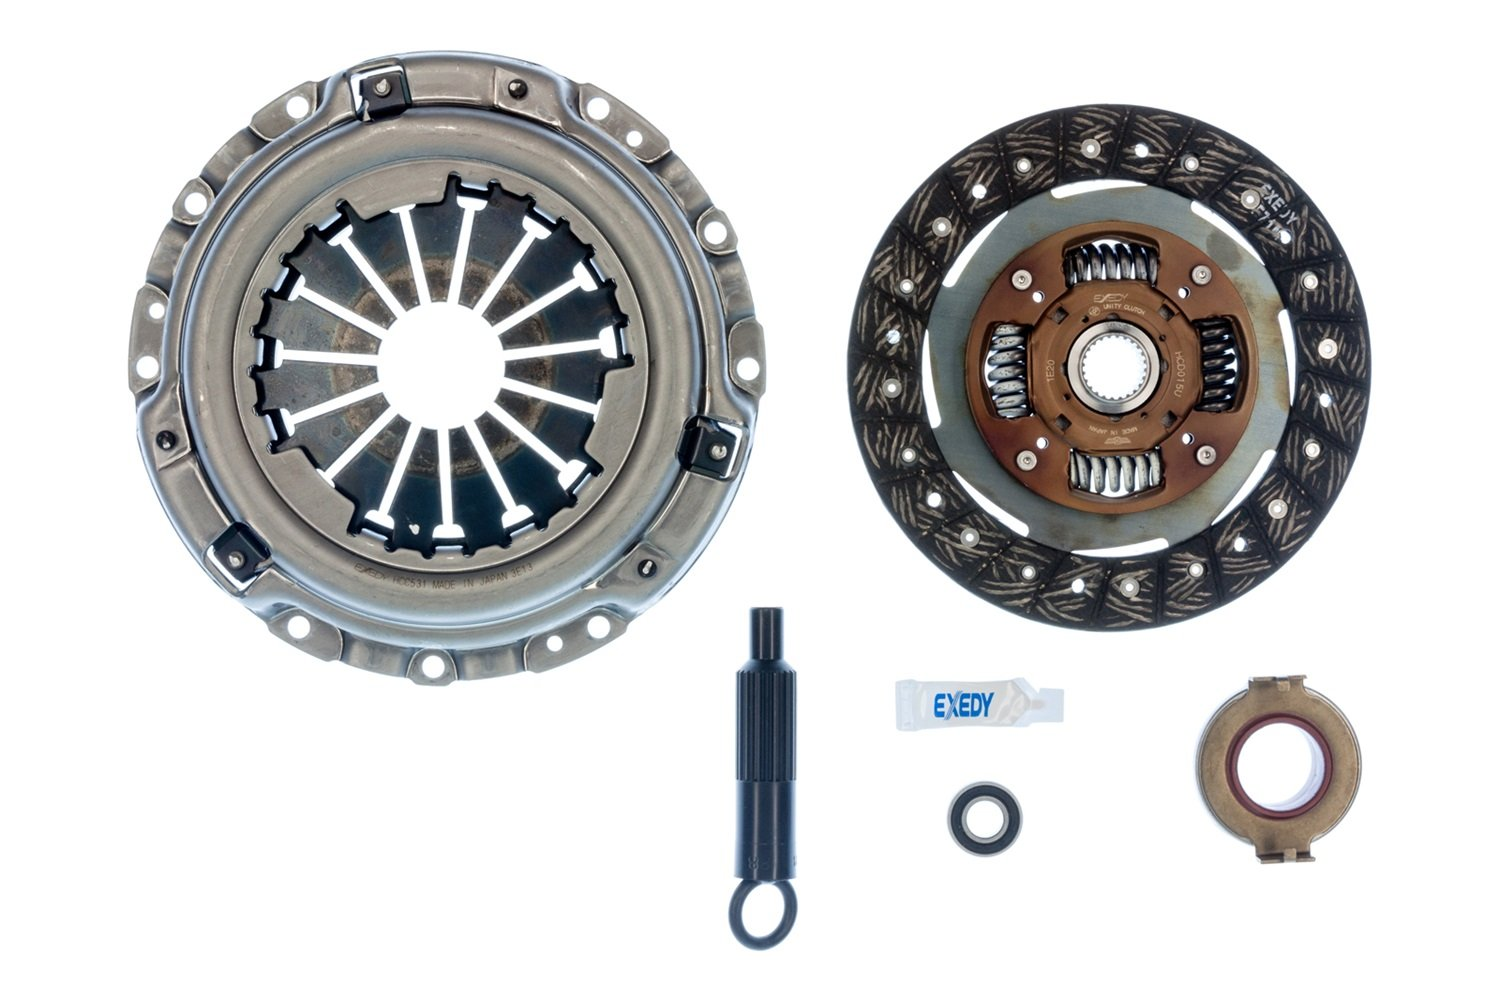 EXEDY KHC05 OEM Replacement Clutch Kit Exedy Racing Clutch